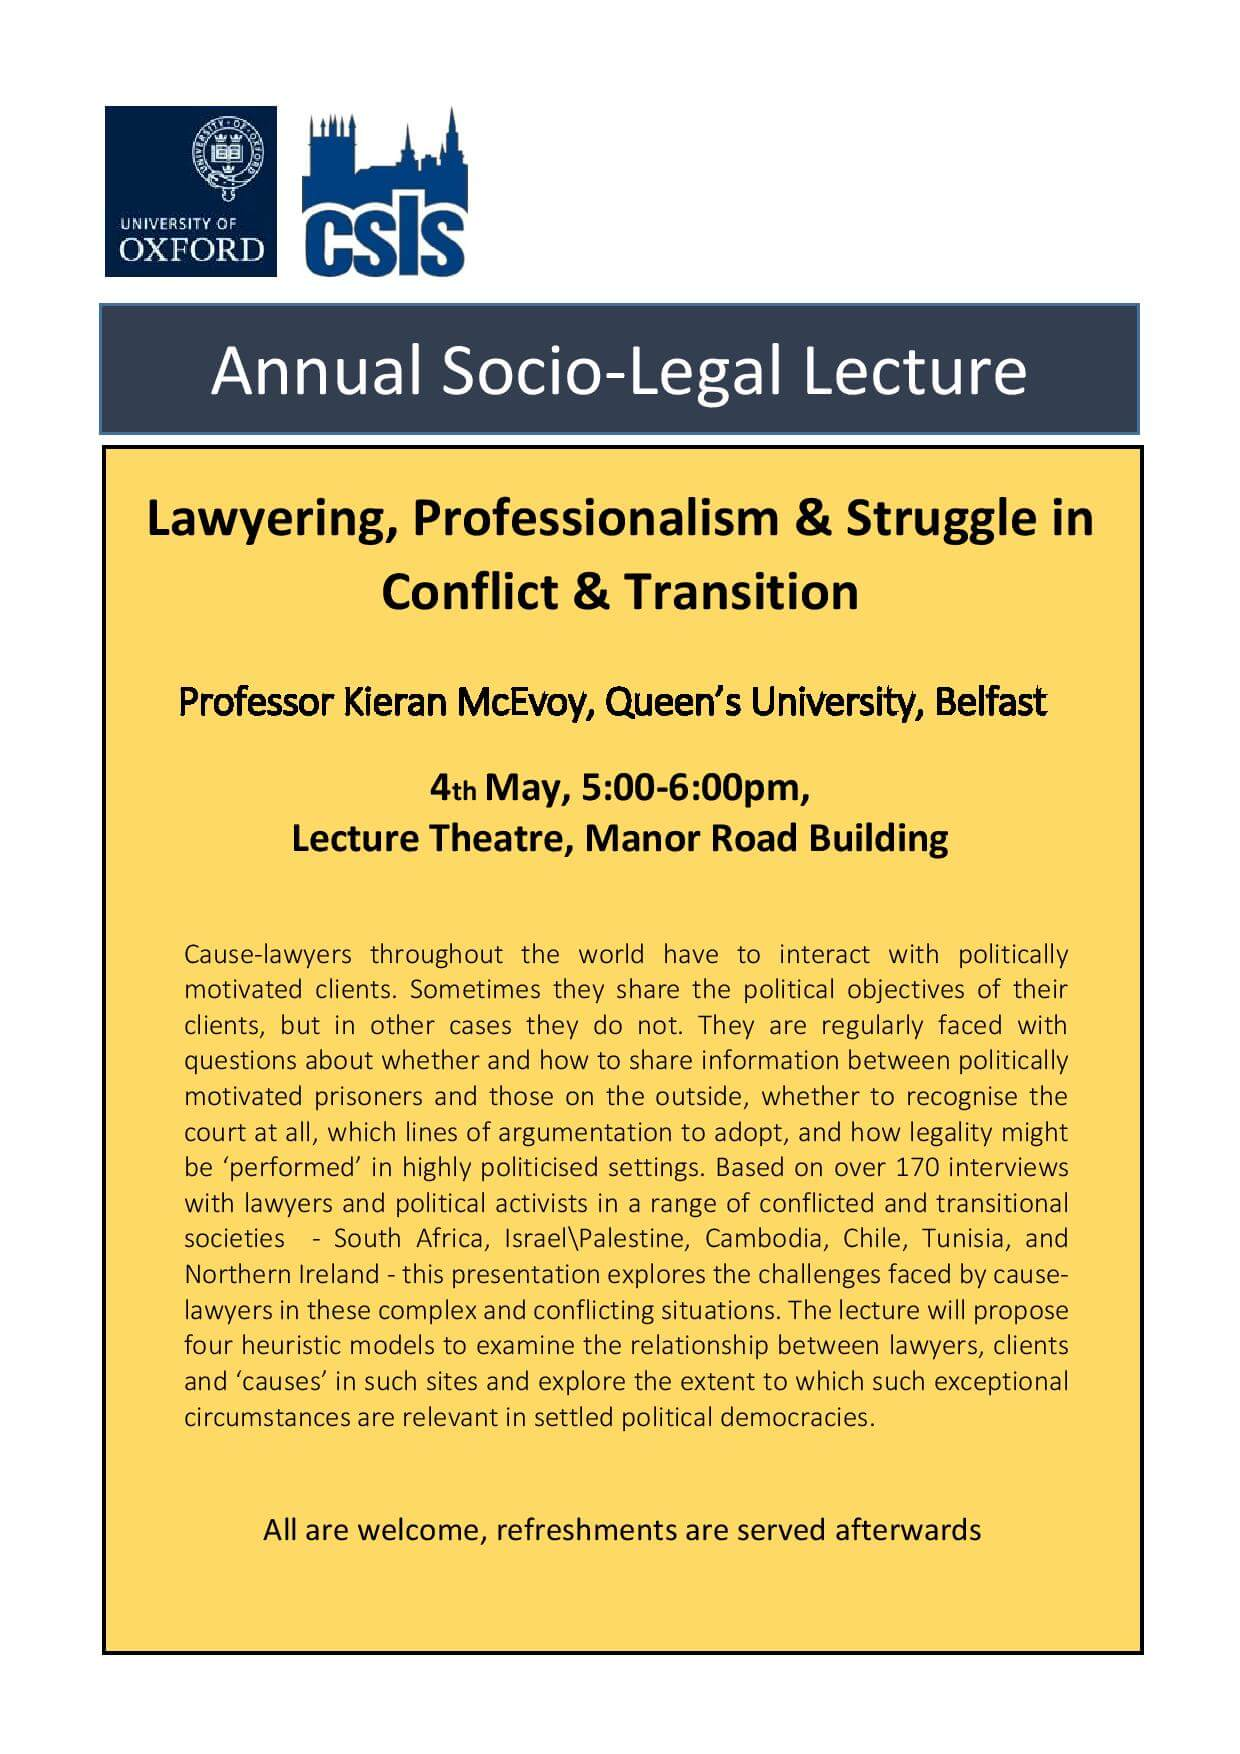 Annual Social Legal Lecture: Lawyering, Professionalism & Struggle in Conflict & Transition- Kieran McEvoy (Belfast)